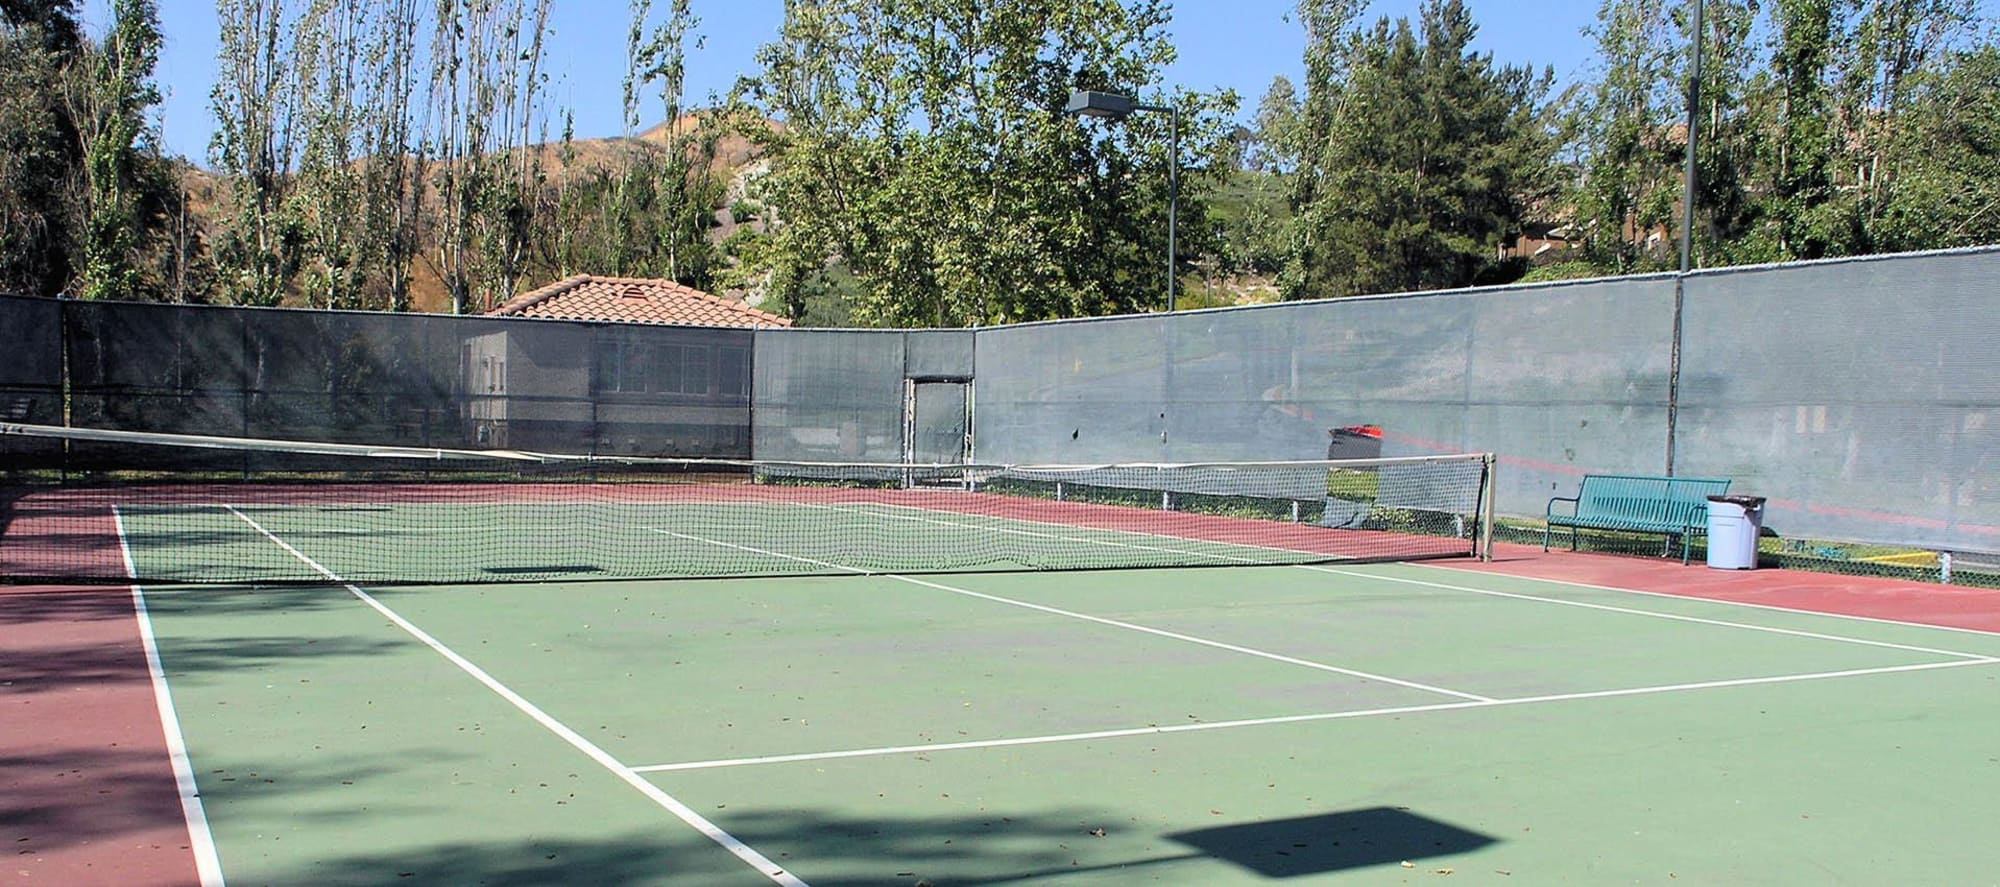 Tennis Courts at Paloma Summit Condominium Rentals in Foothill Ranch, California